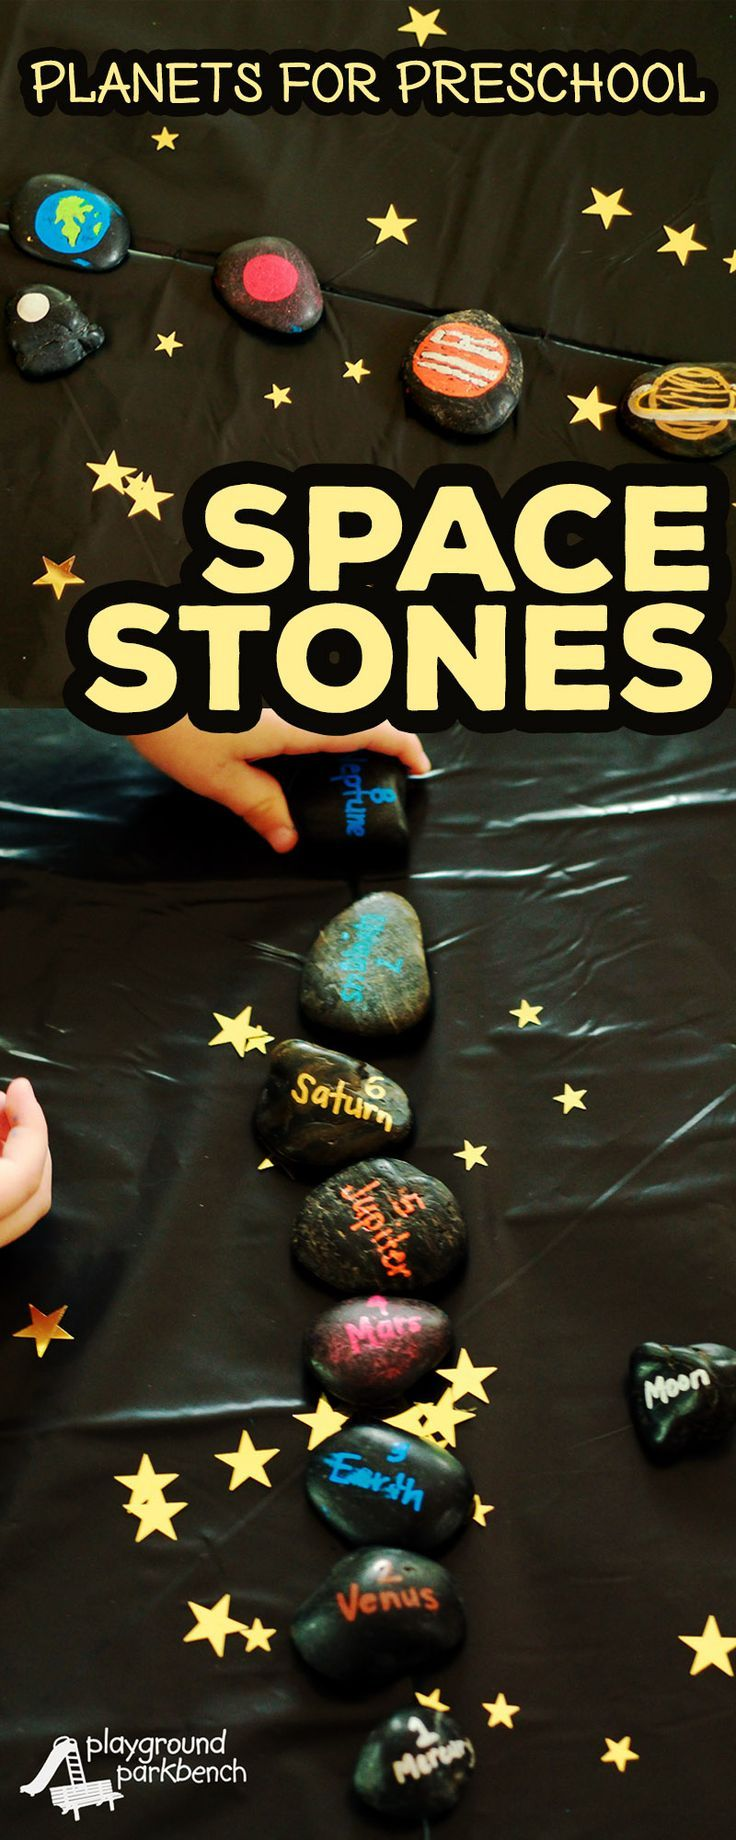 Space Stones: Playing with Planets for Preschool | Space ...